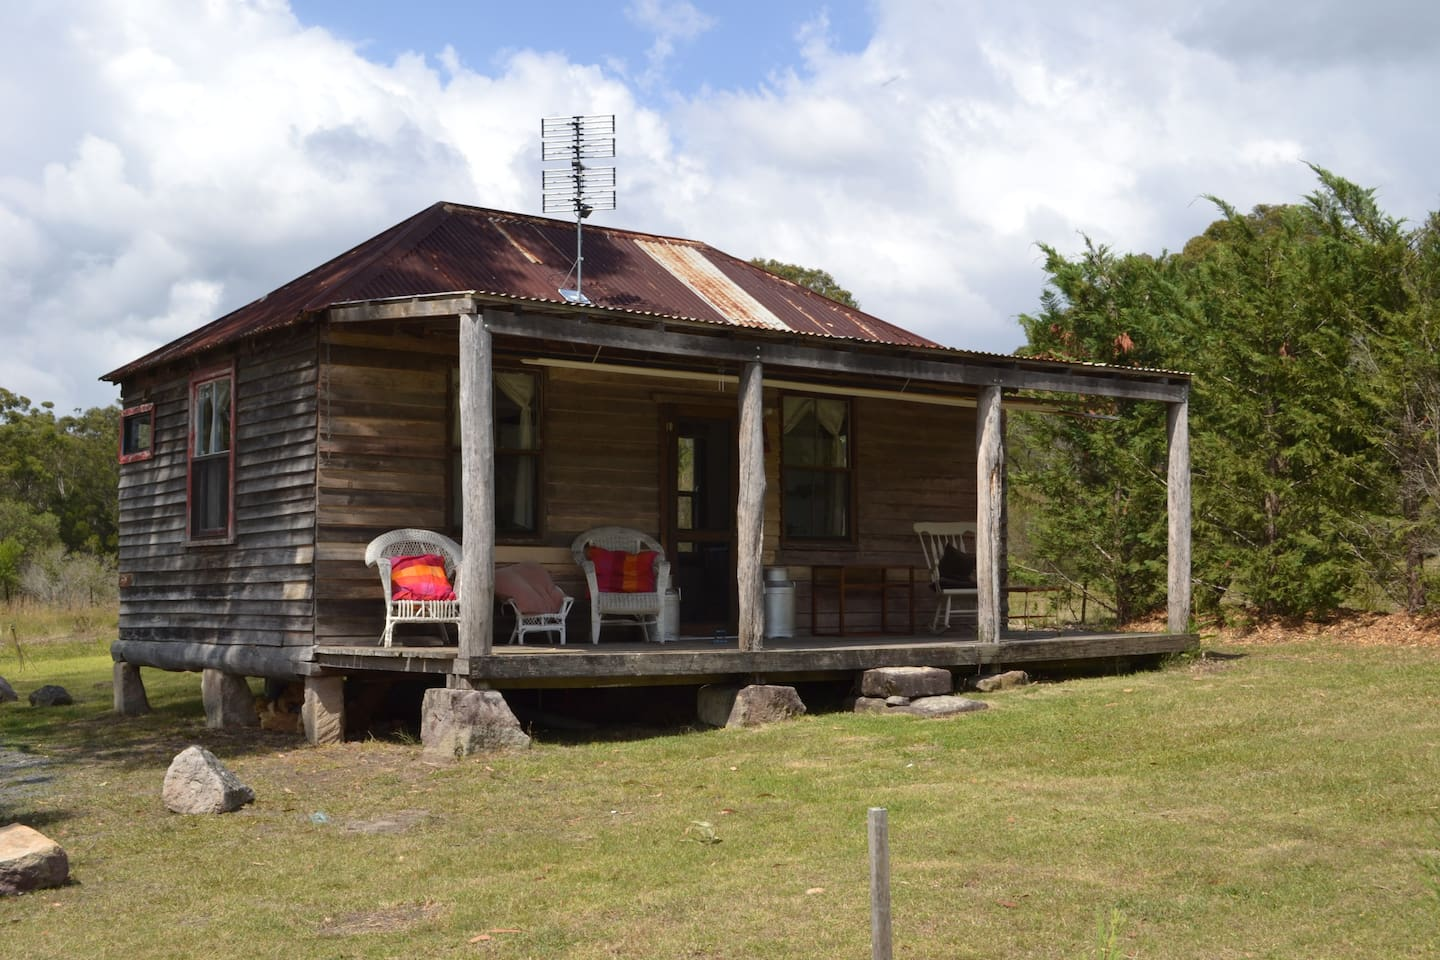 Originally built in 1890 in Yass, relocated to Kangaroo Valley and lovingly restored